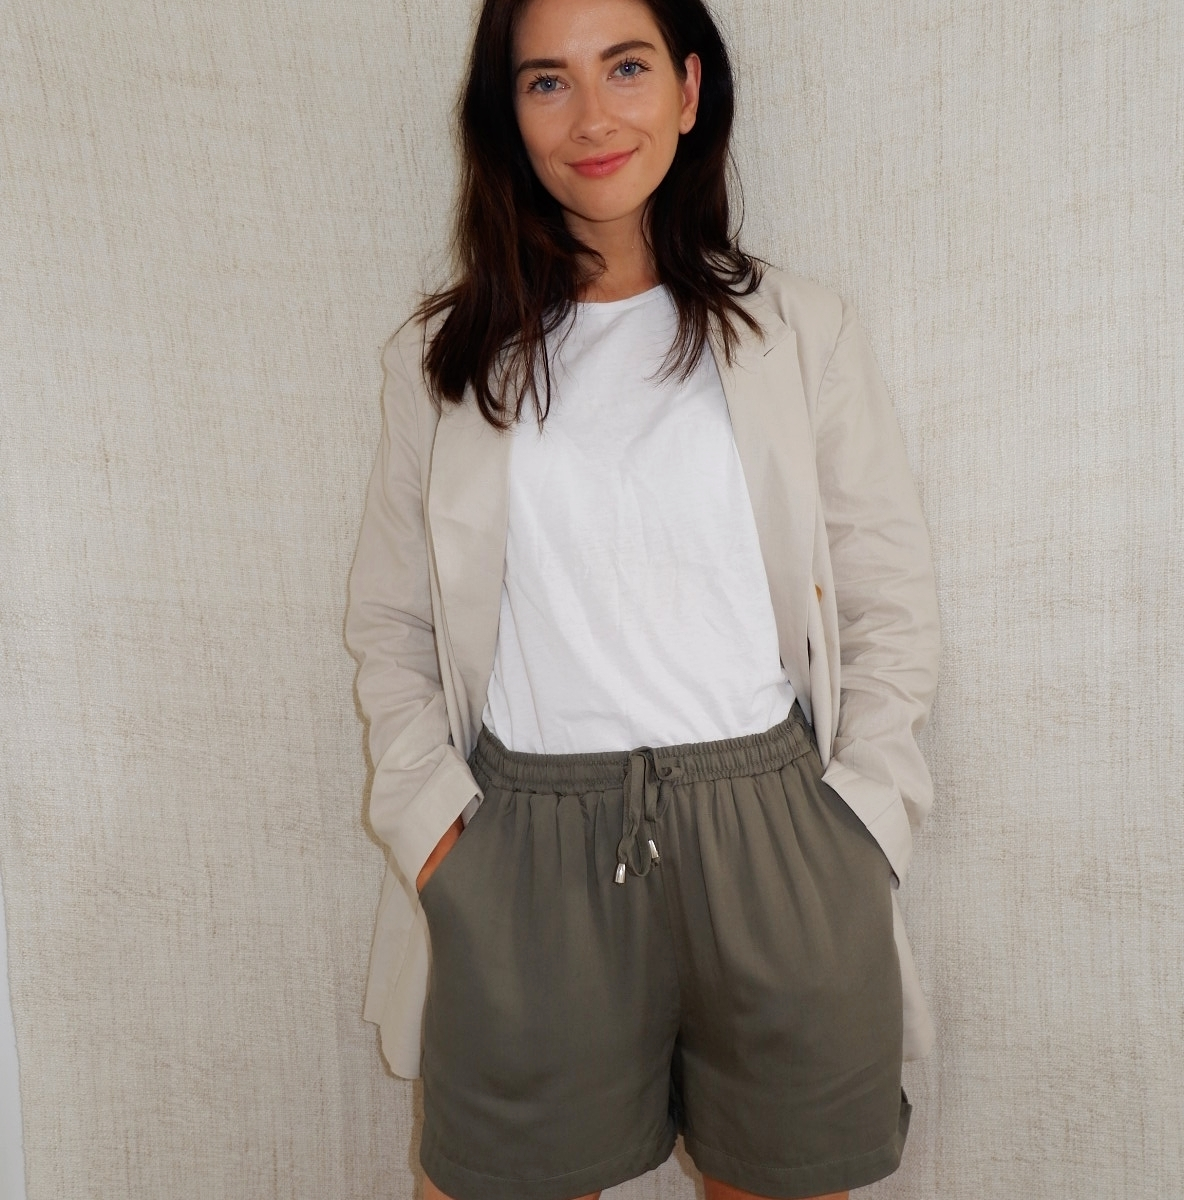 khaki shorts from femme luxe finery